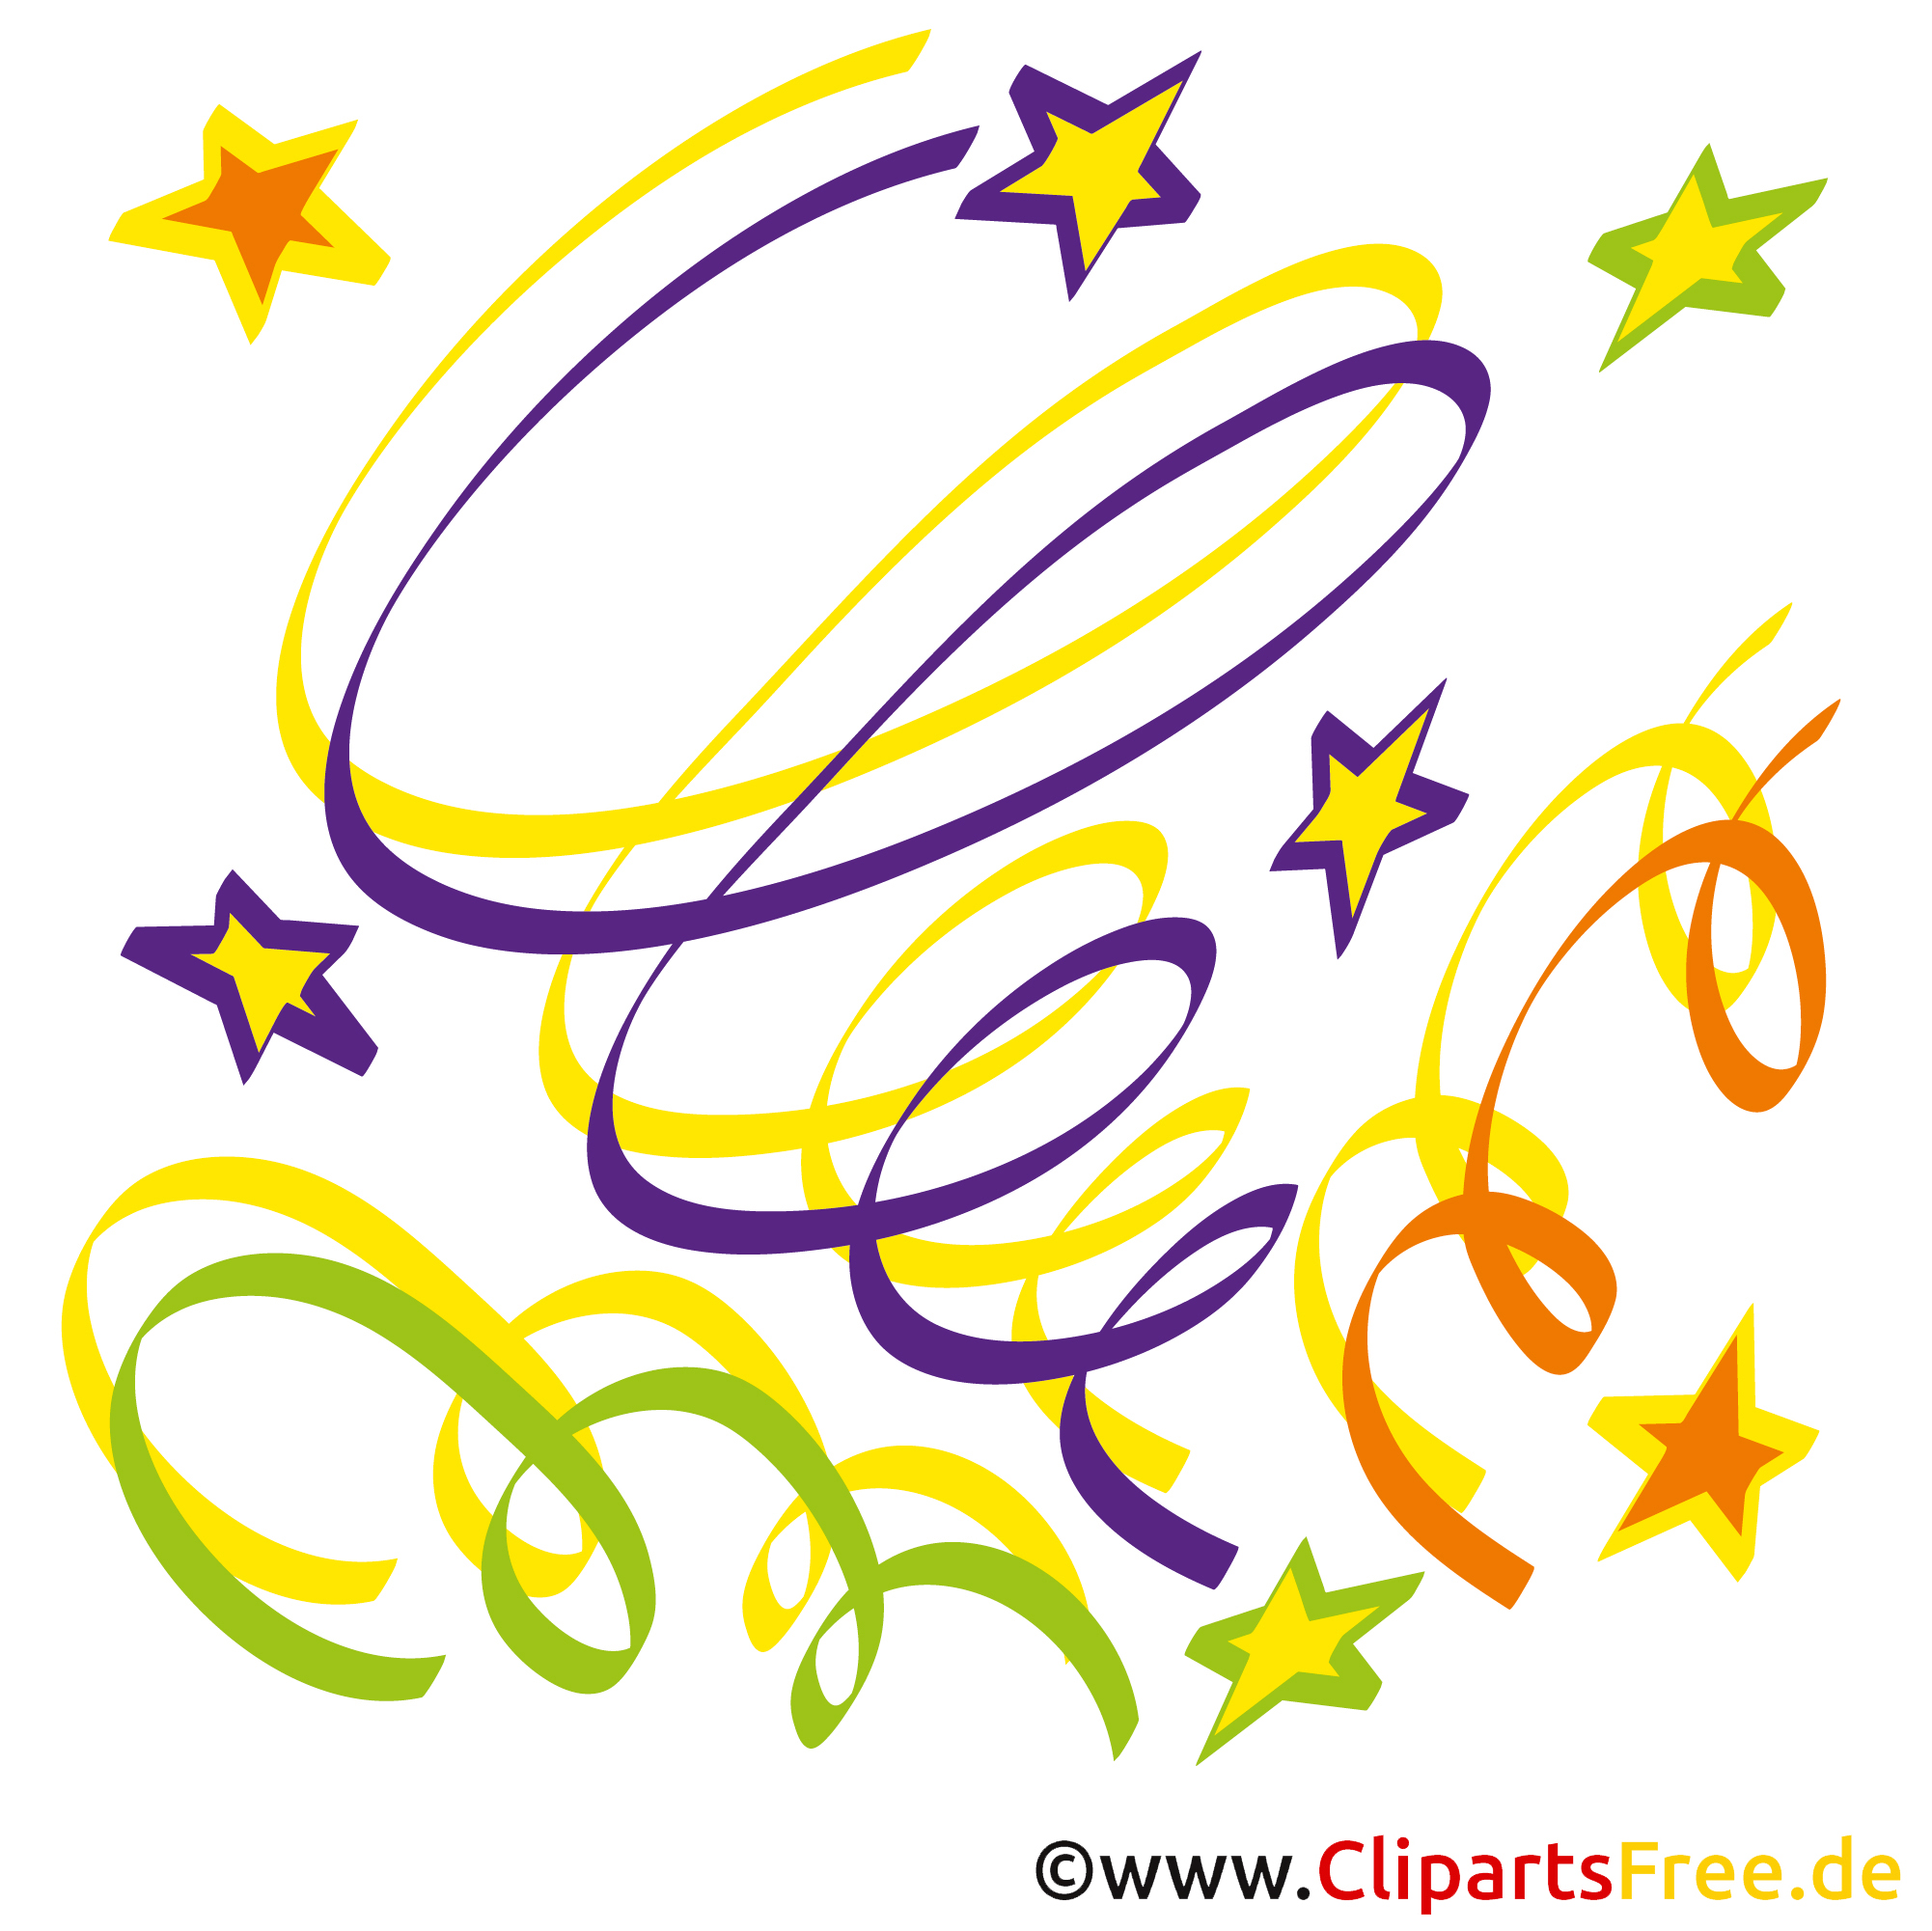 clipart geburtstag - photo #13